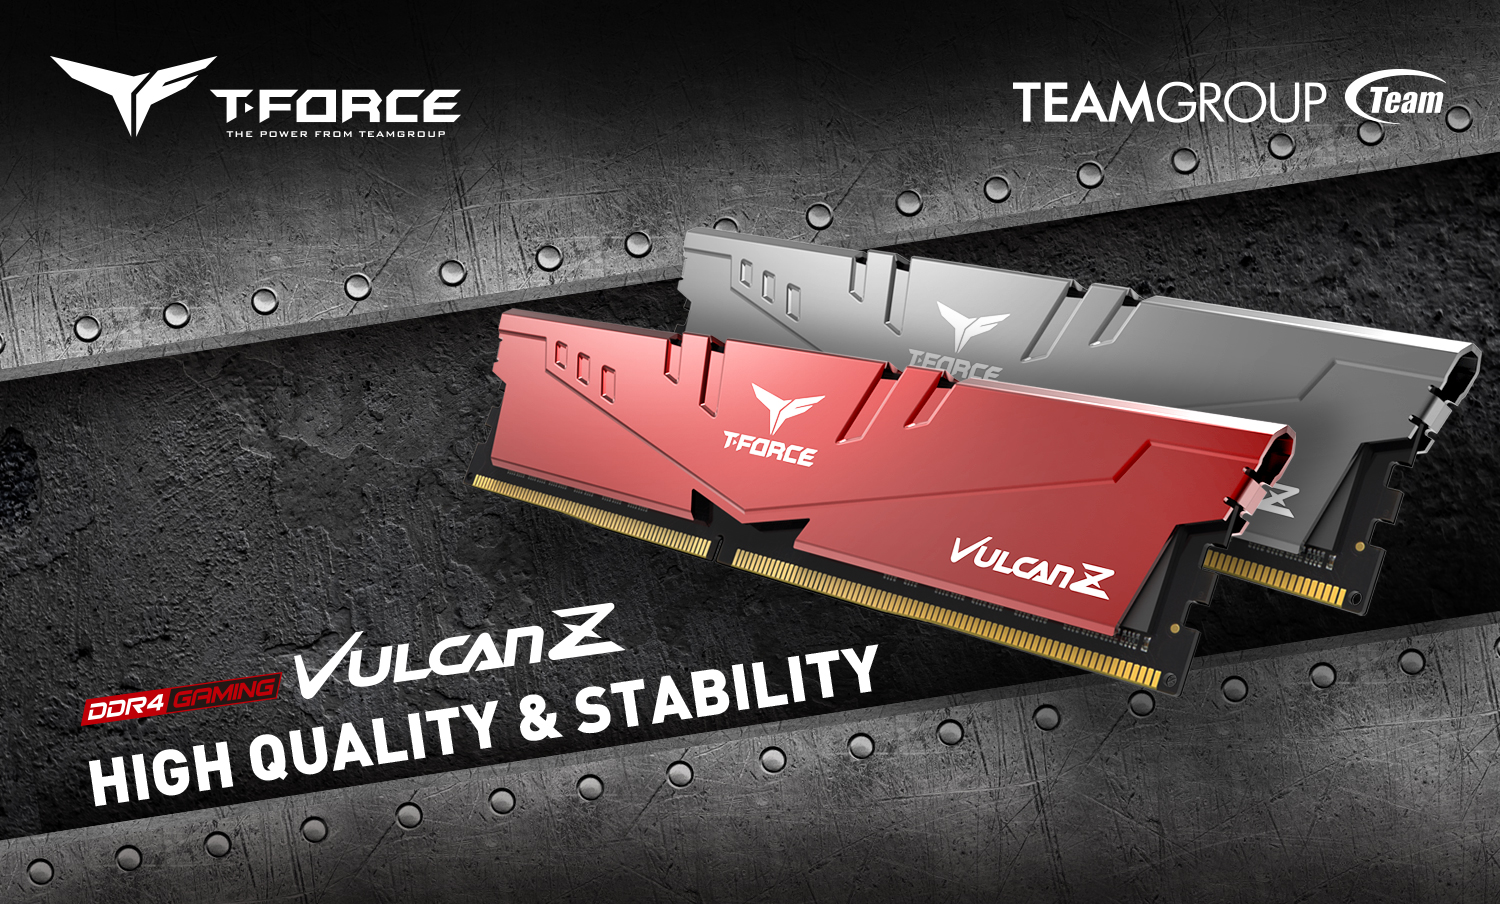 T-FORCE and TEAMGROUP logos above the red and gray memory sticks angled up, looking to the left next to text that reads DDR4 GAMING VULCAN Z - HIGH-QUALITY & STABILITY. The background is a sheet metal background